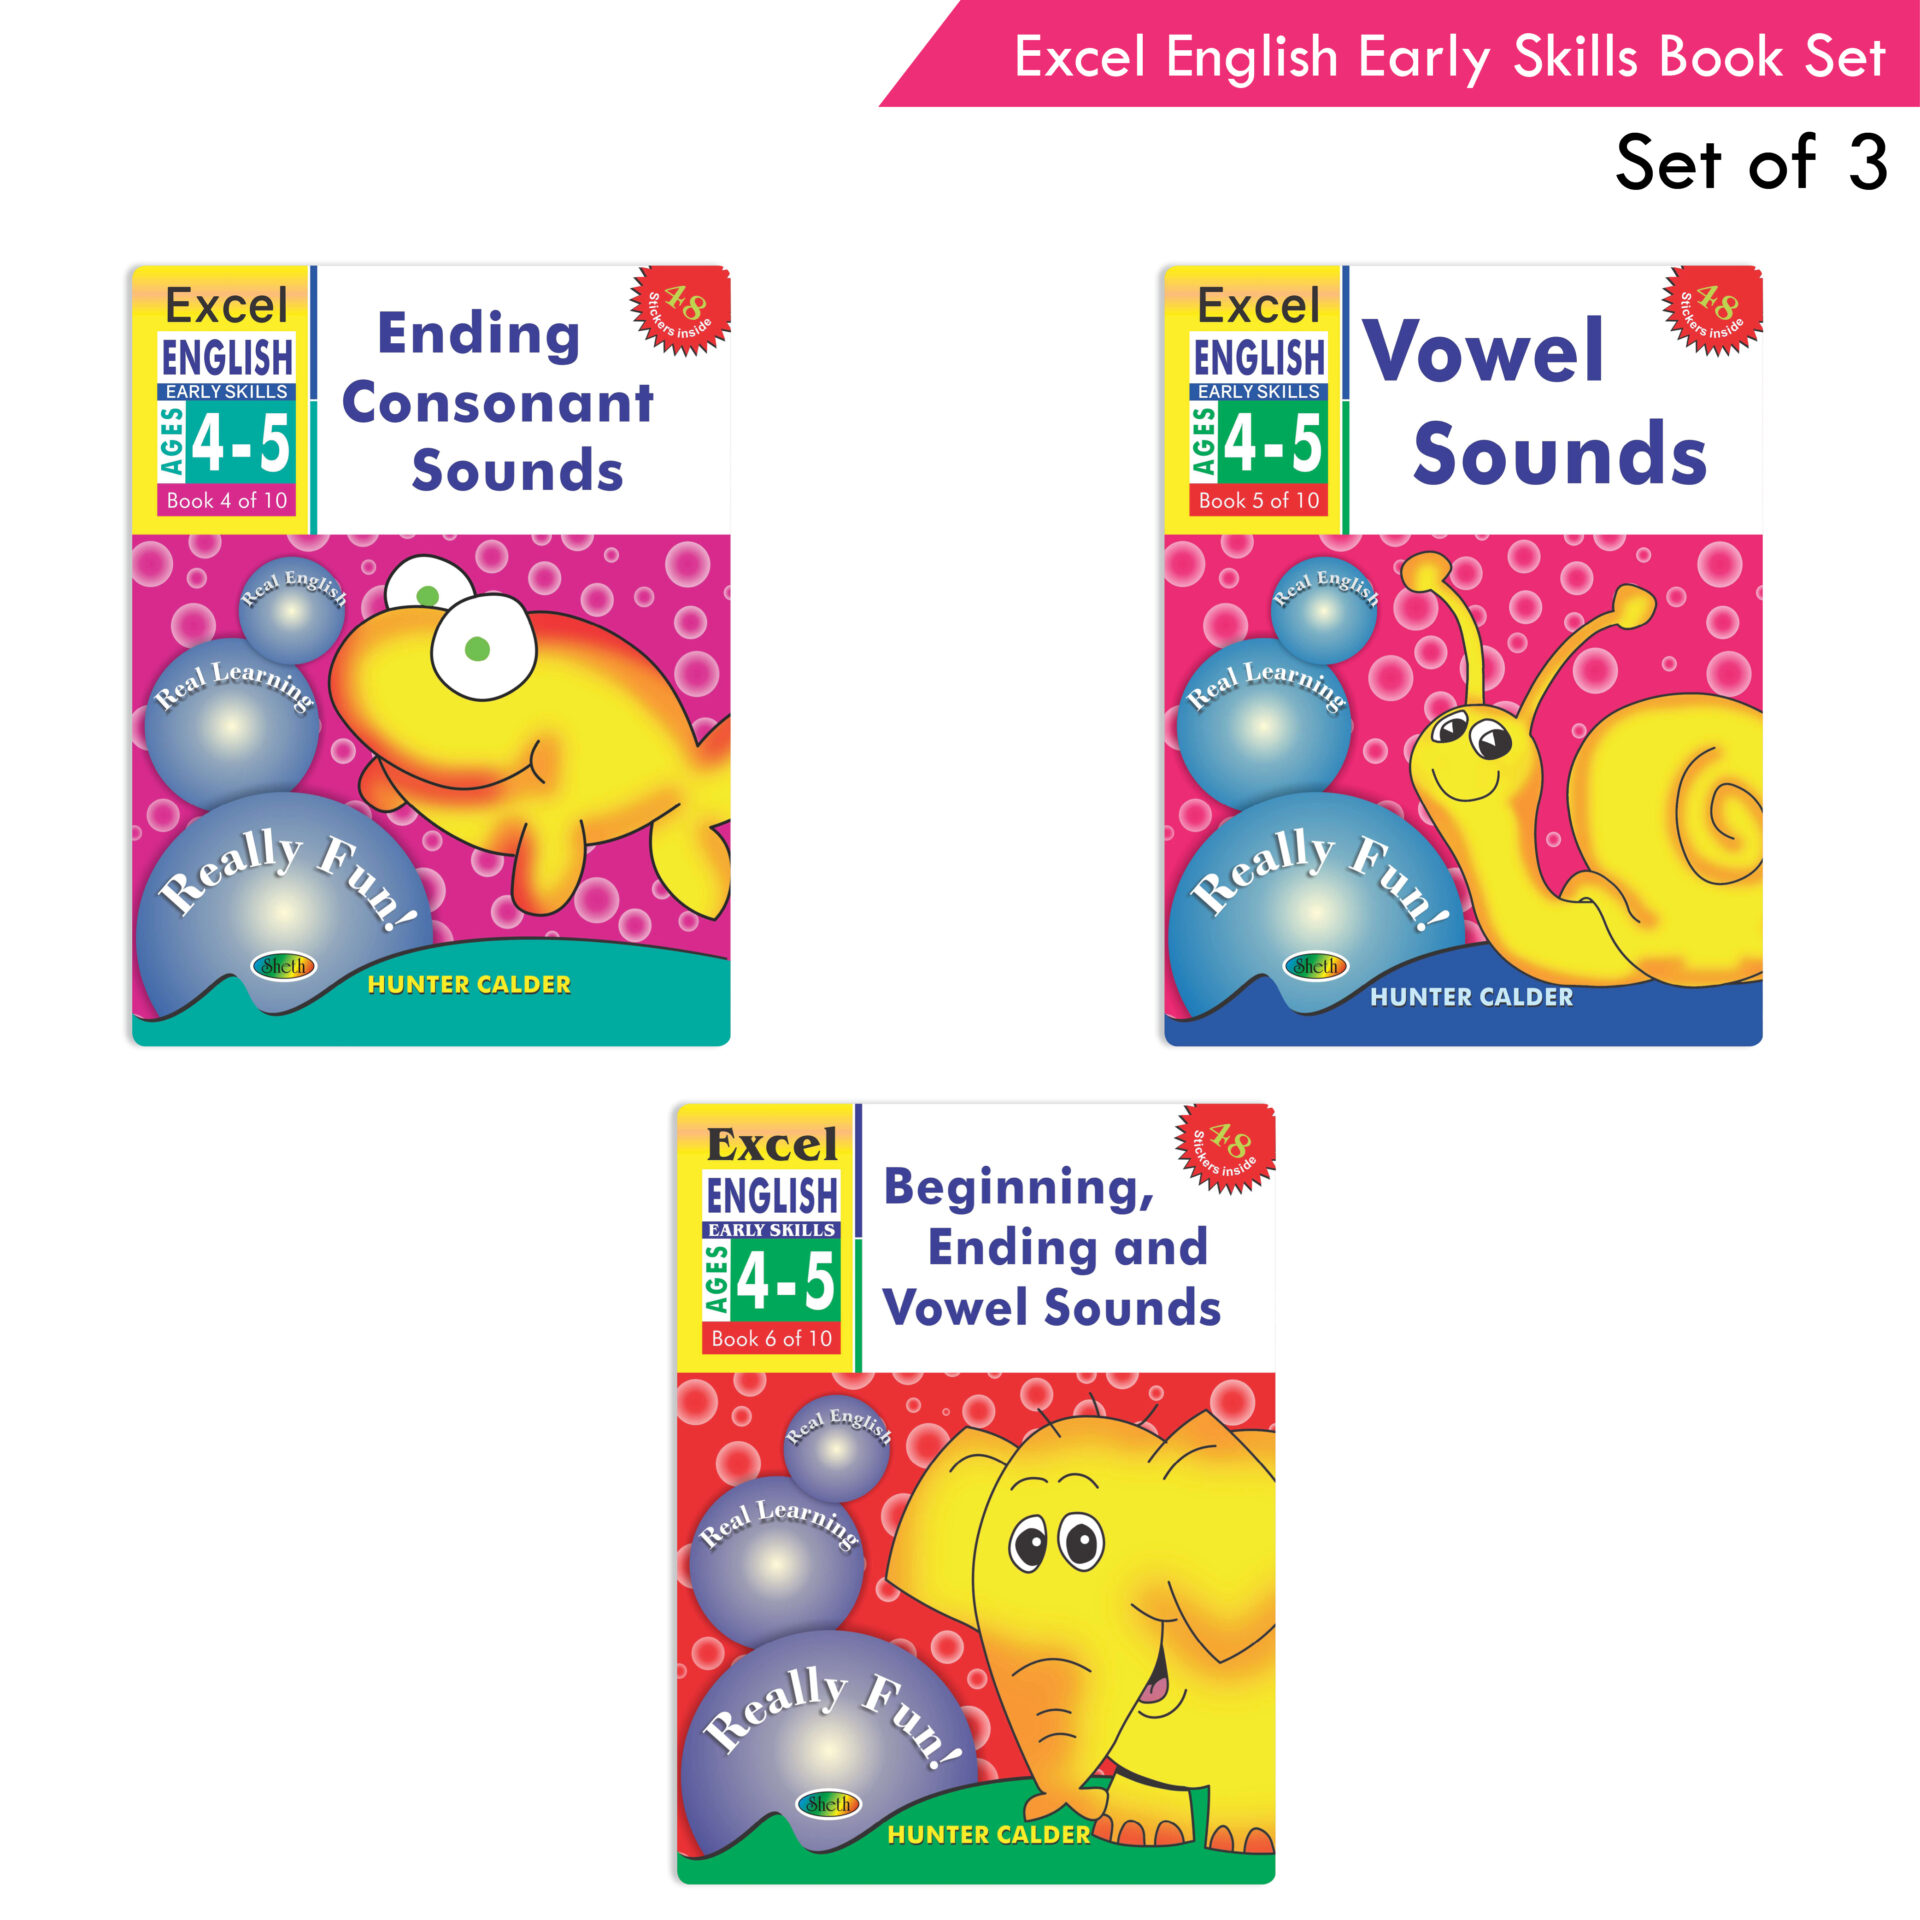 Excel English Early Skills Ages 4 5 Set of 3 1